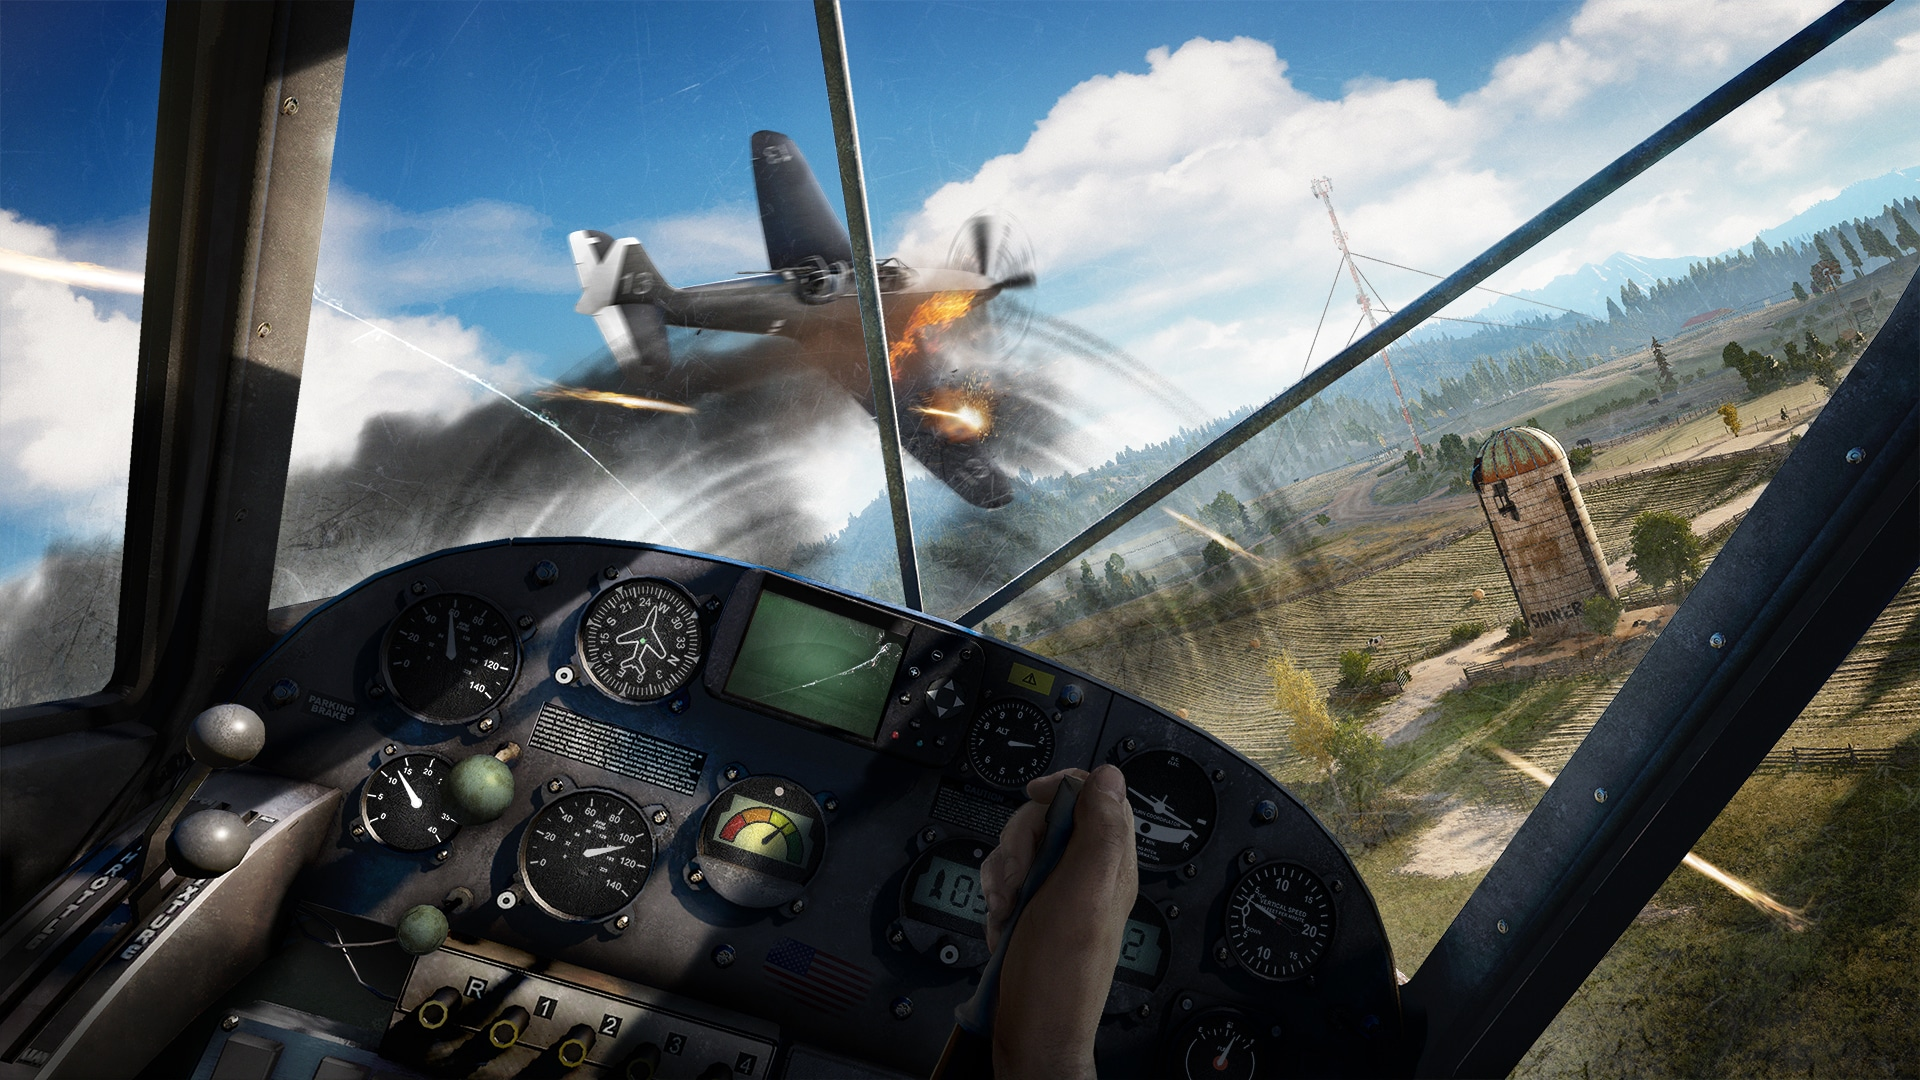 In Far Cry 5, your dinky little seaplane will successfully take on sleek and powerful WWII era fighters